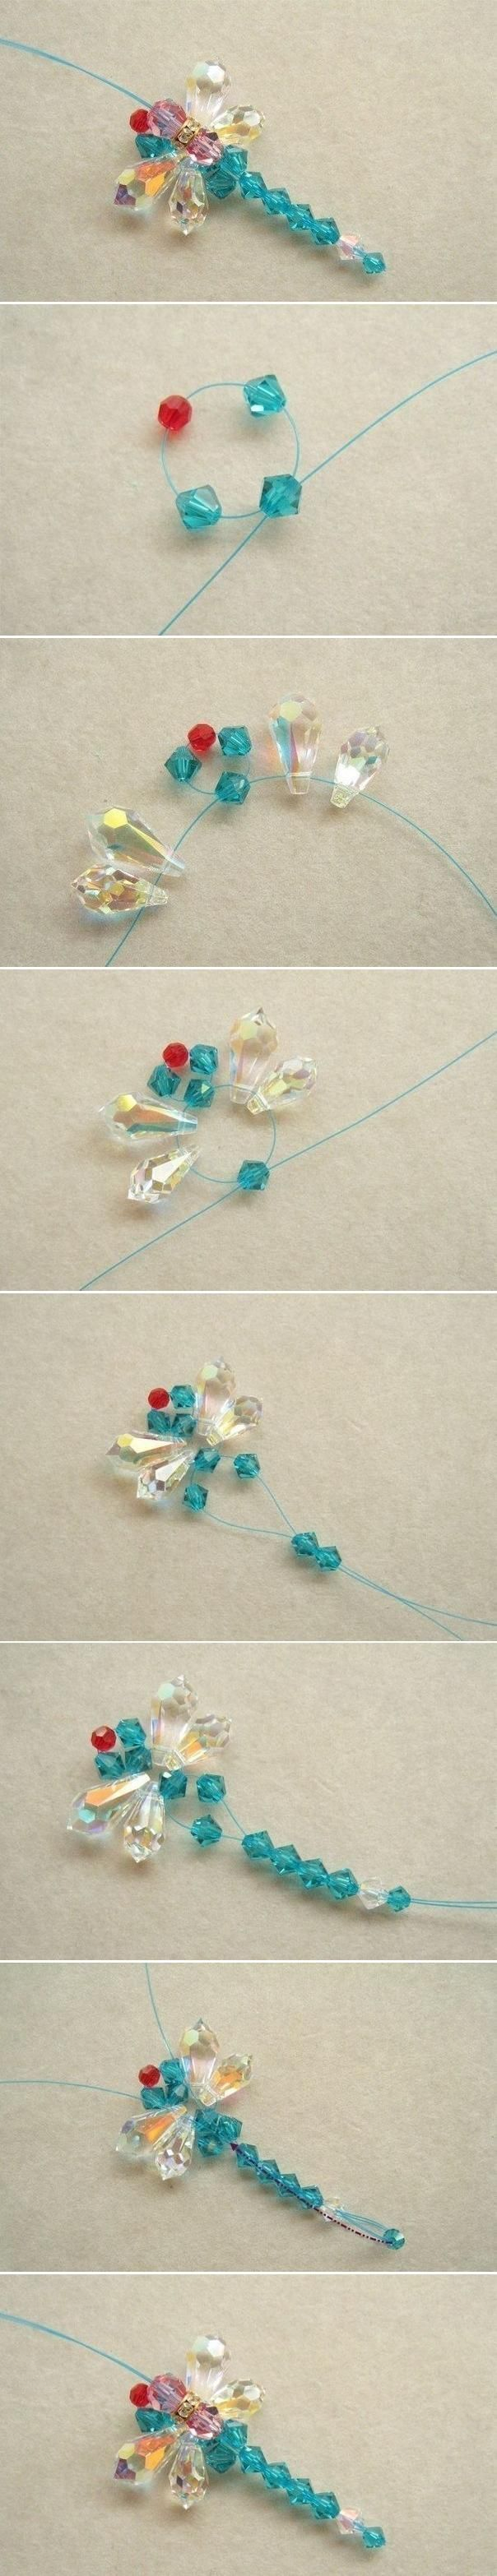 DIY Beaded Dragonfly | iCreativeIdeas.com LIKE Us on Facebook ==> https://www.facebook.com/icreativeideas